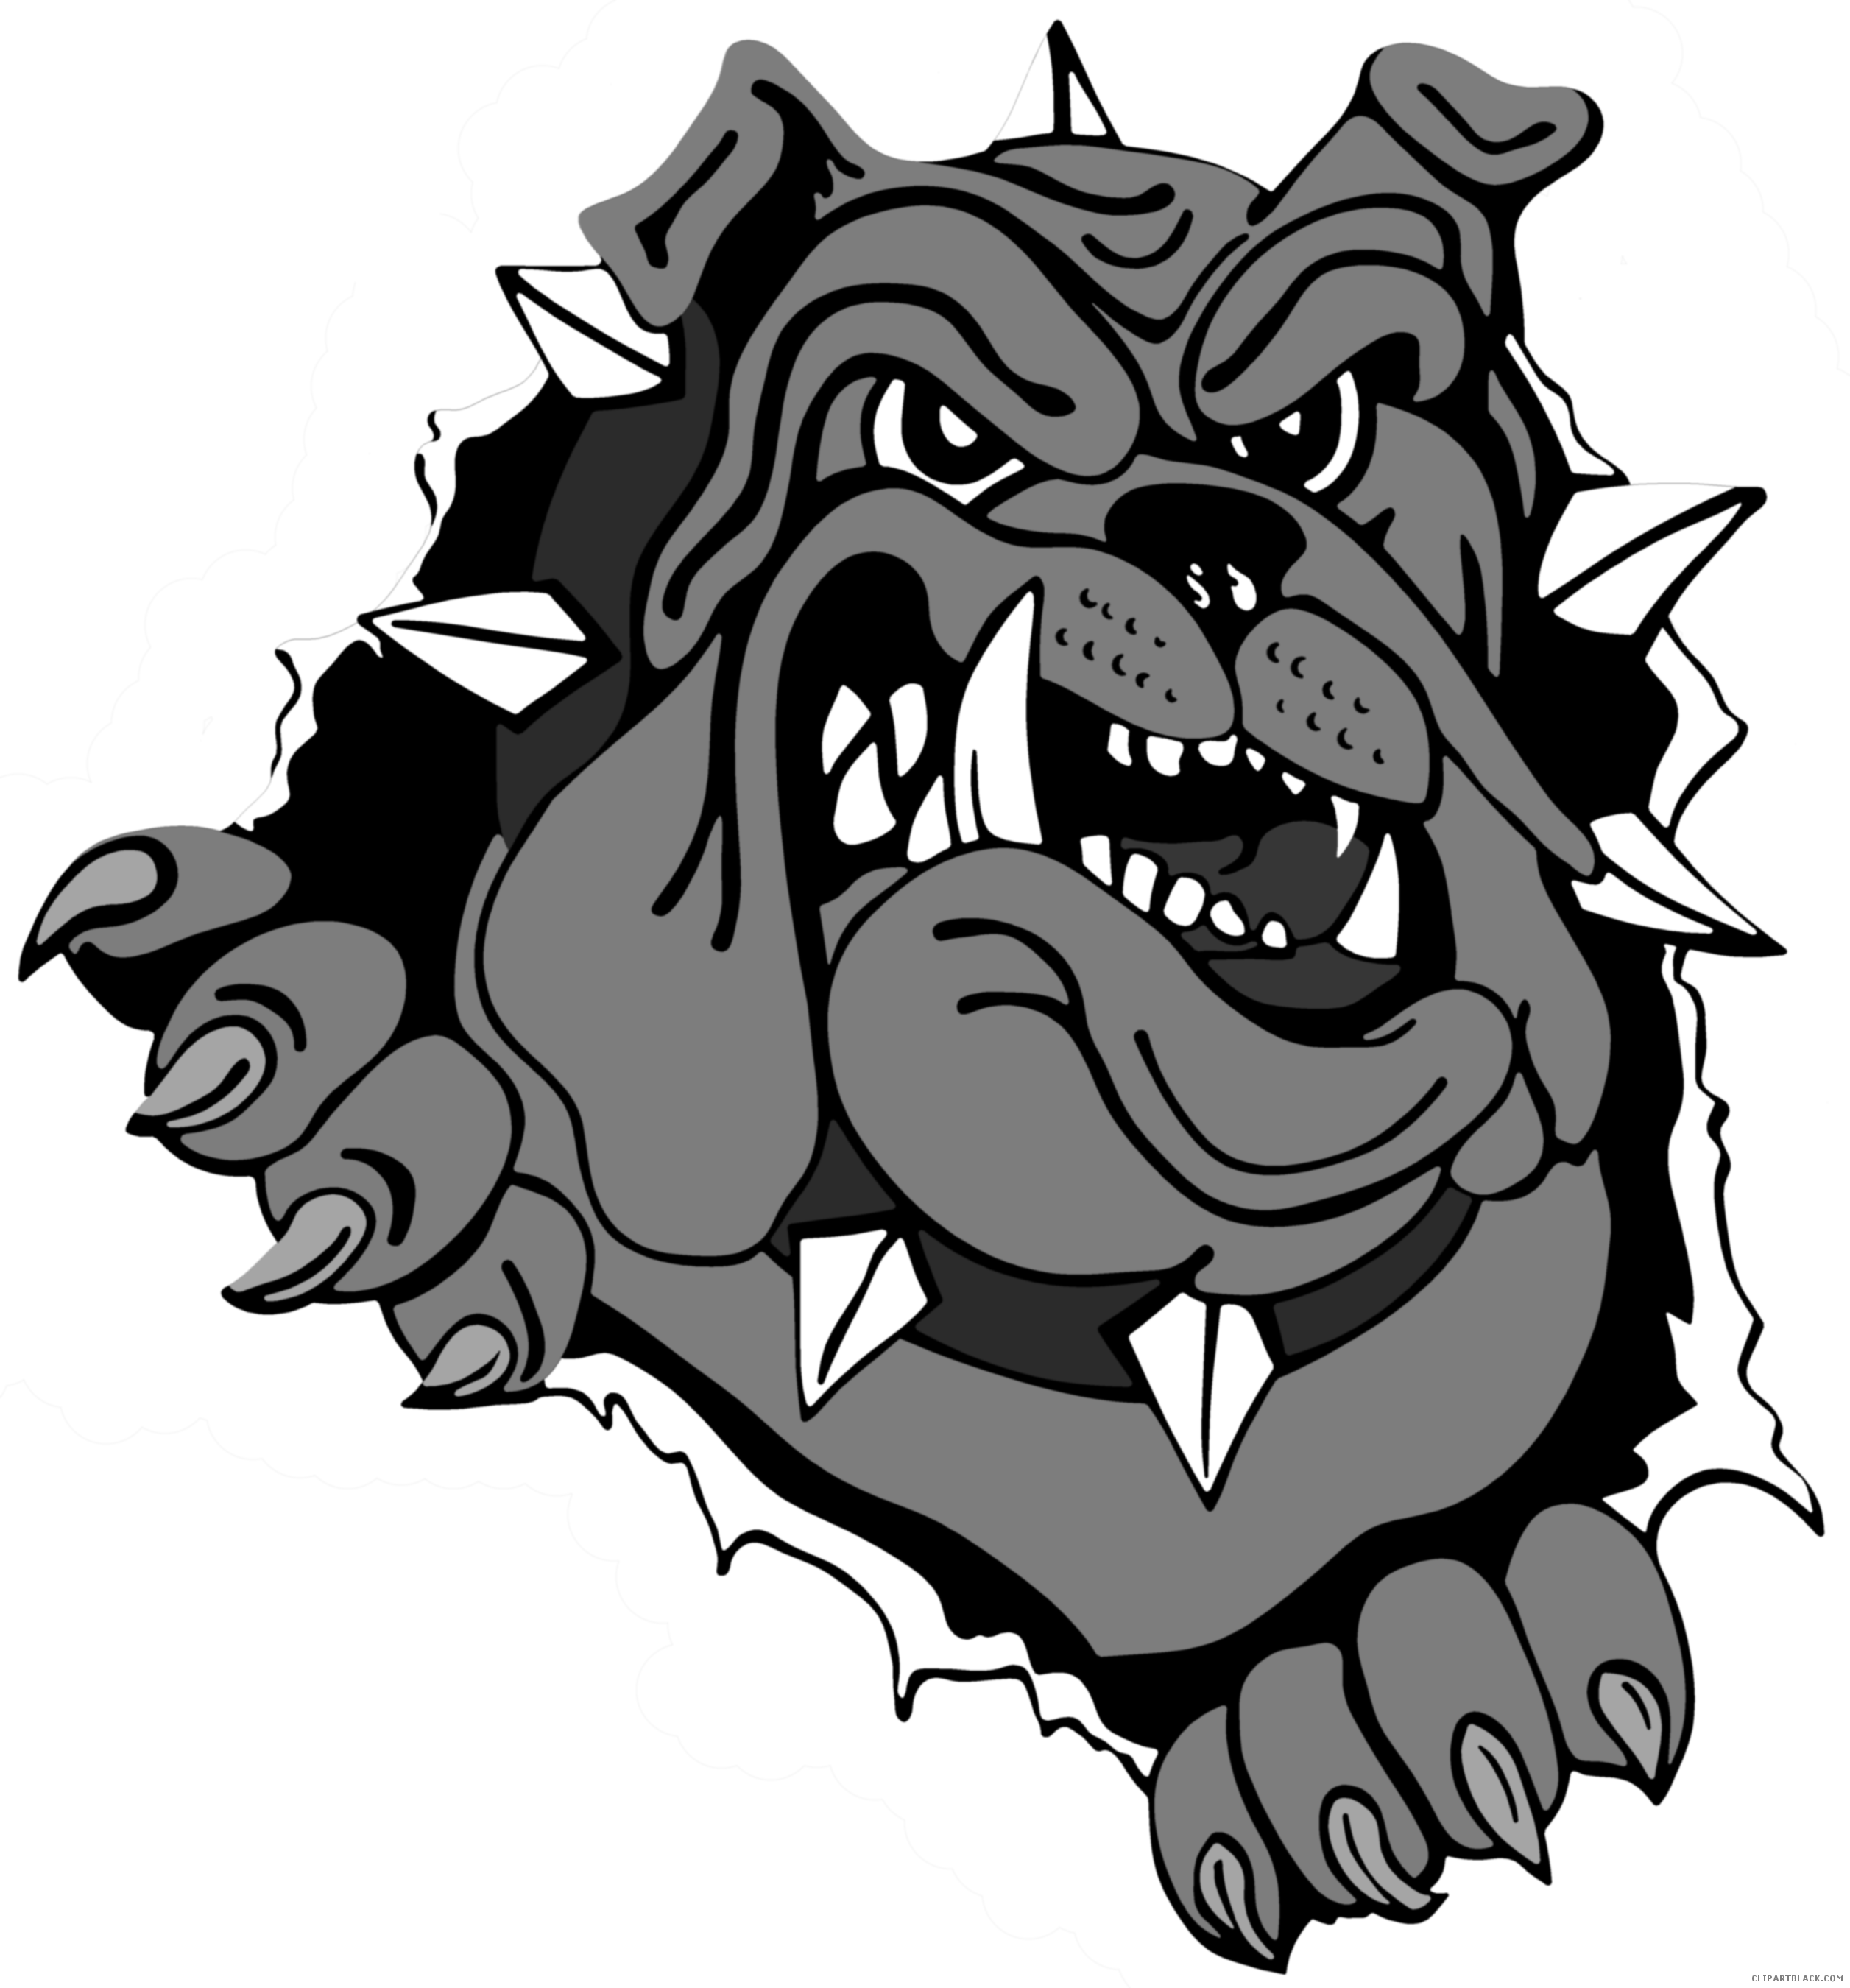 Bulldog football mascot clipart clip freeuse stock Bulldog Head Clipart - ClipartBlack.com clip freeuse stock